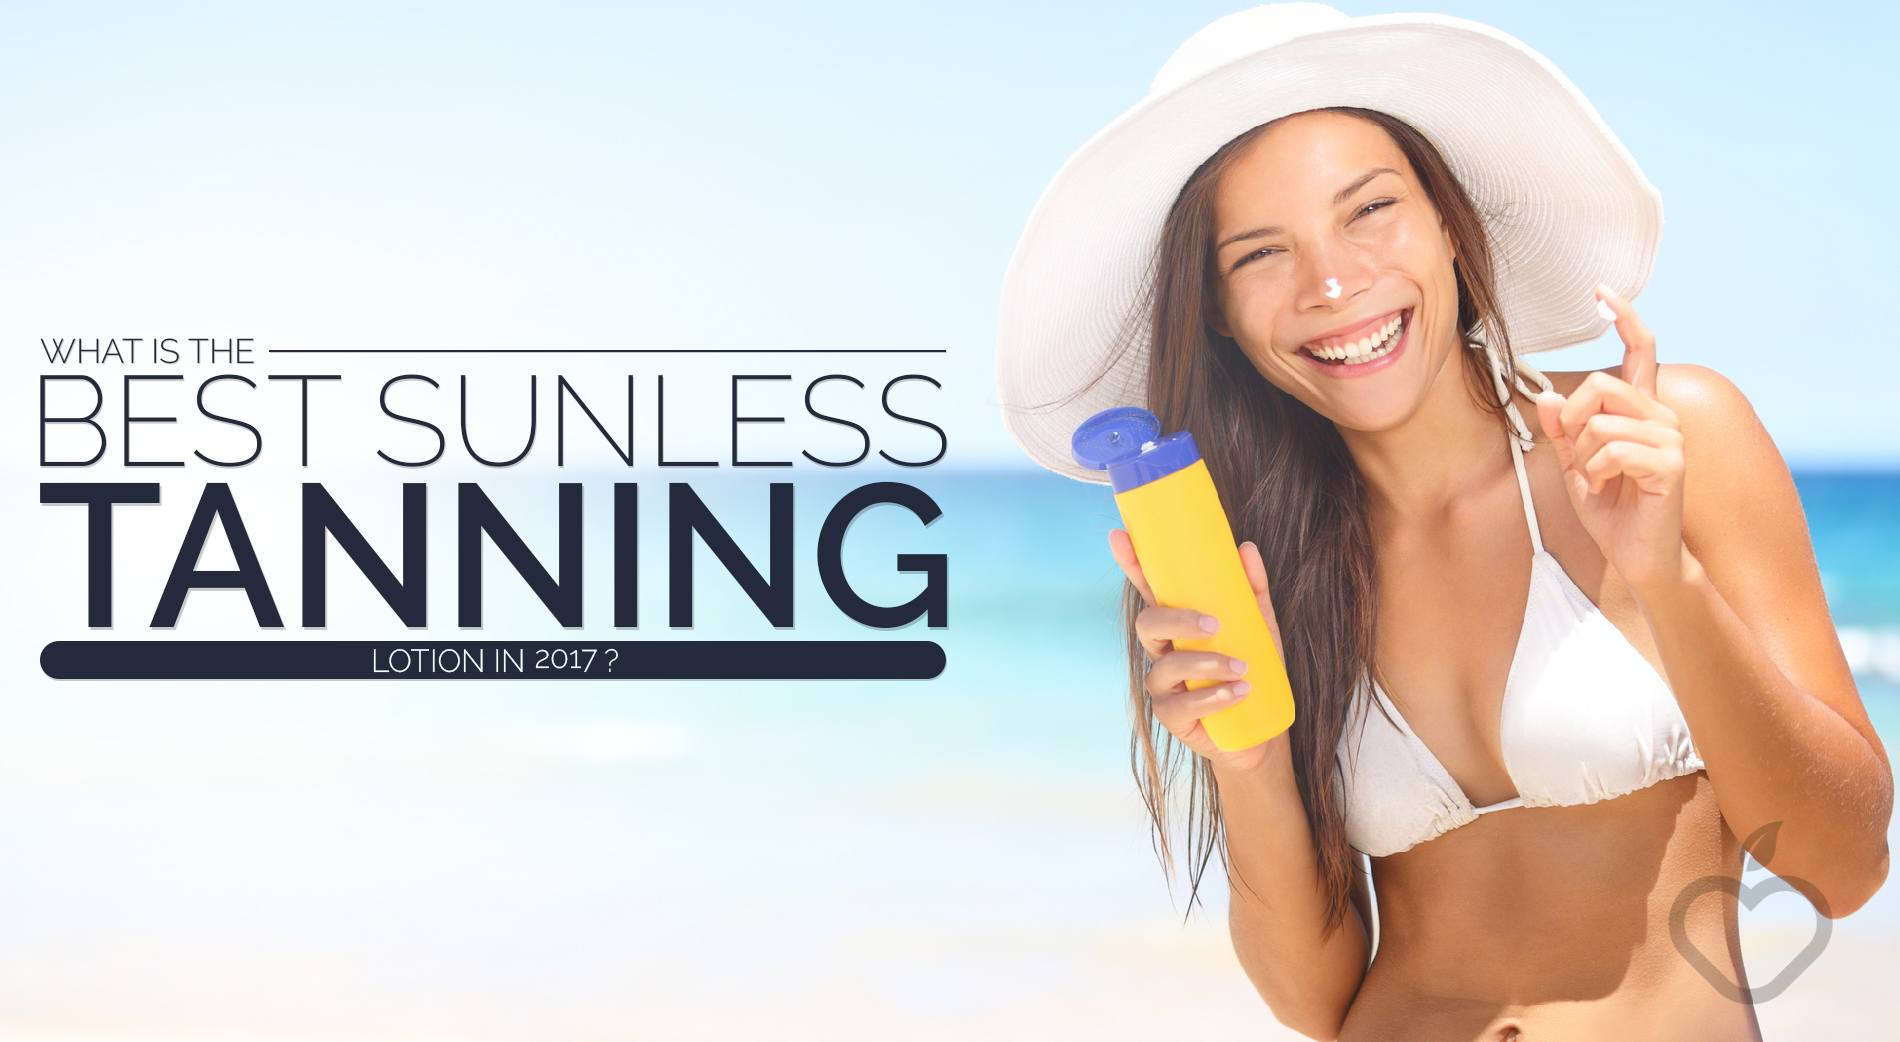 What Is The Best Sunless Tanning Lotion In 2017?